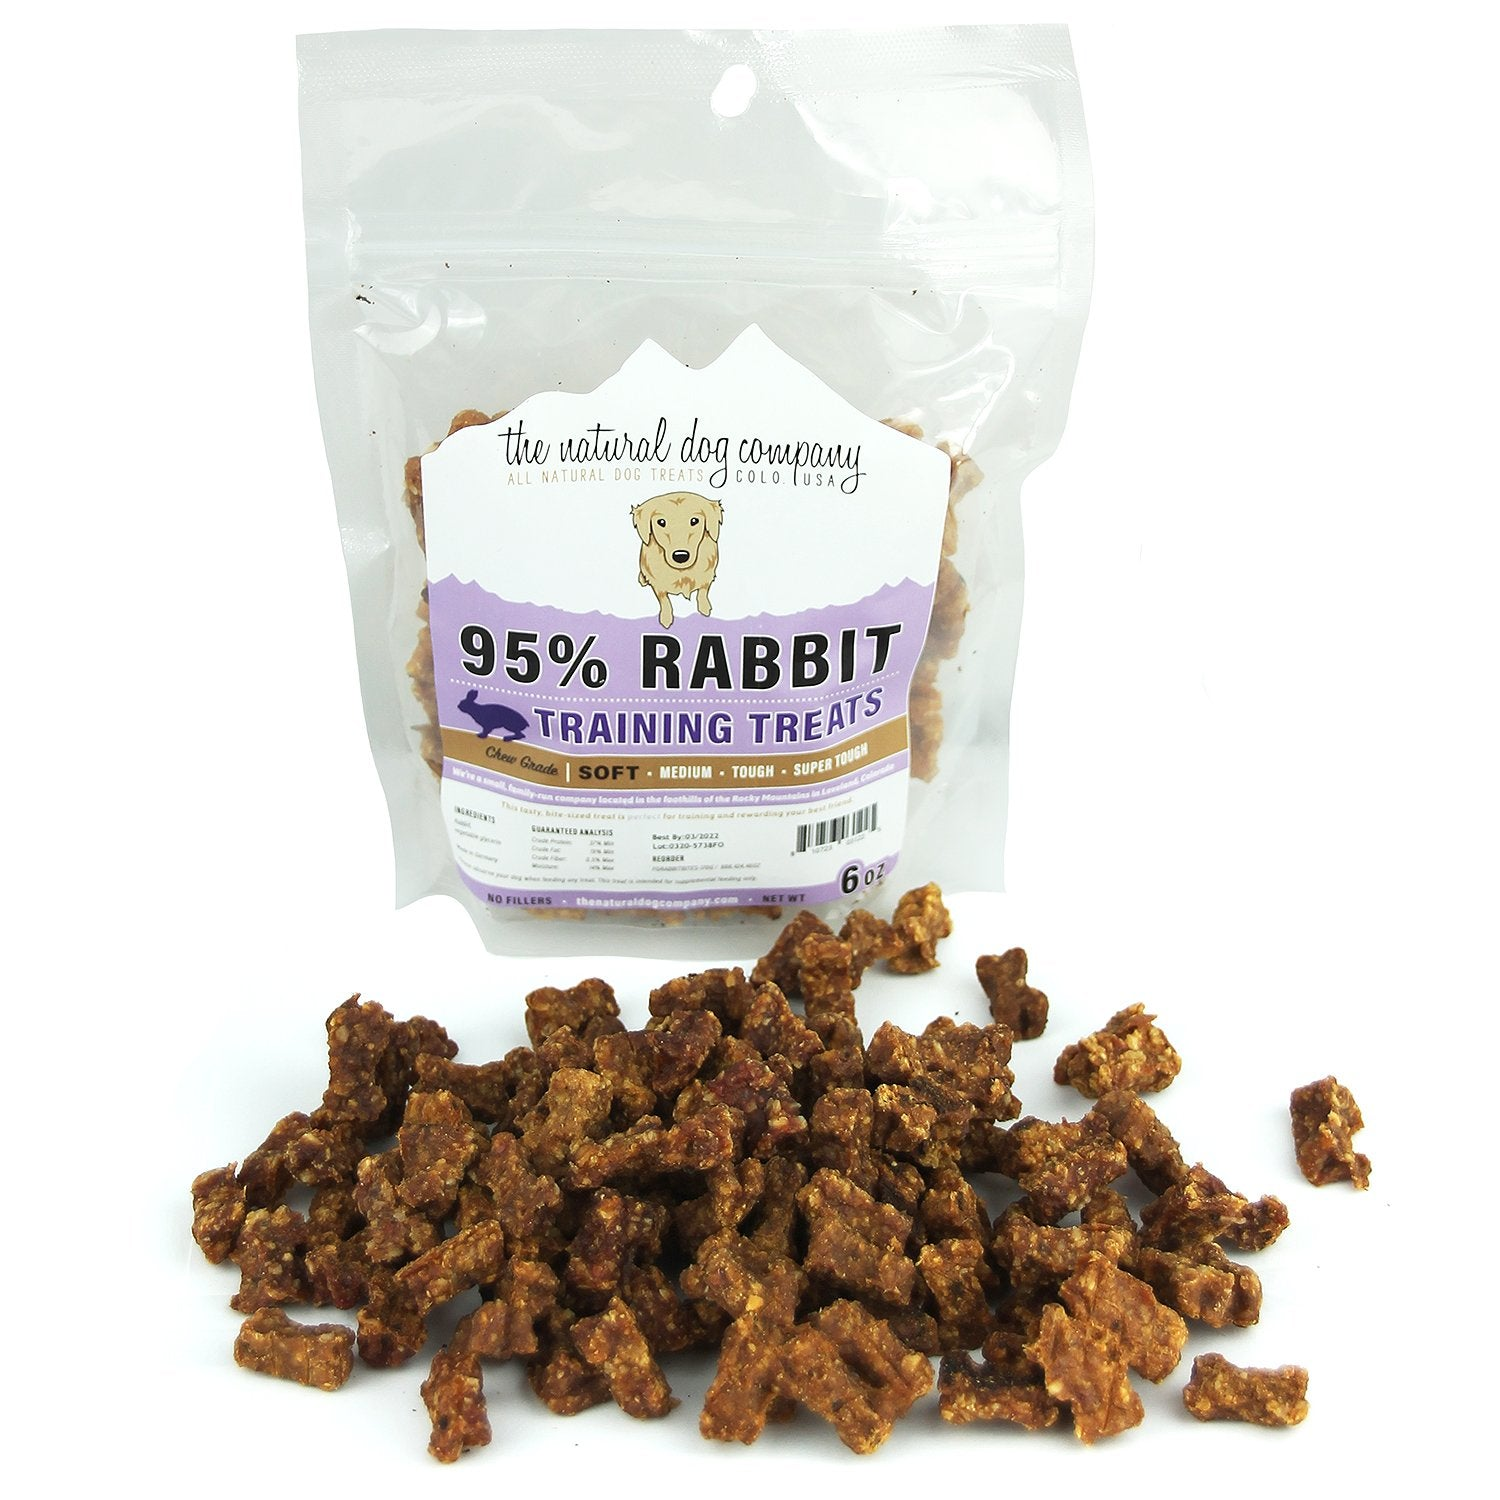 The Natural Dog Company Rabbit Bites